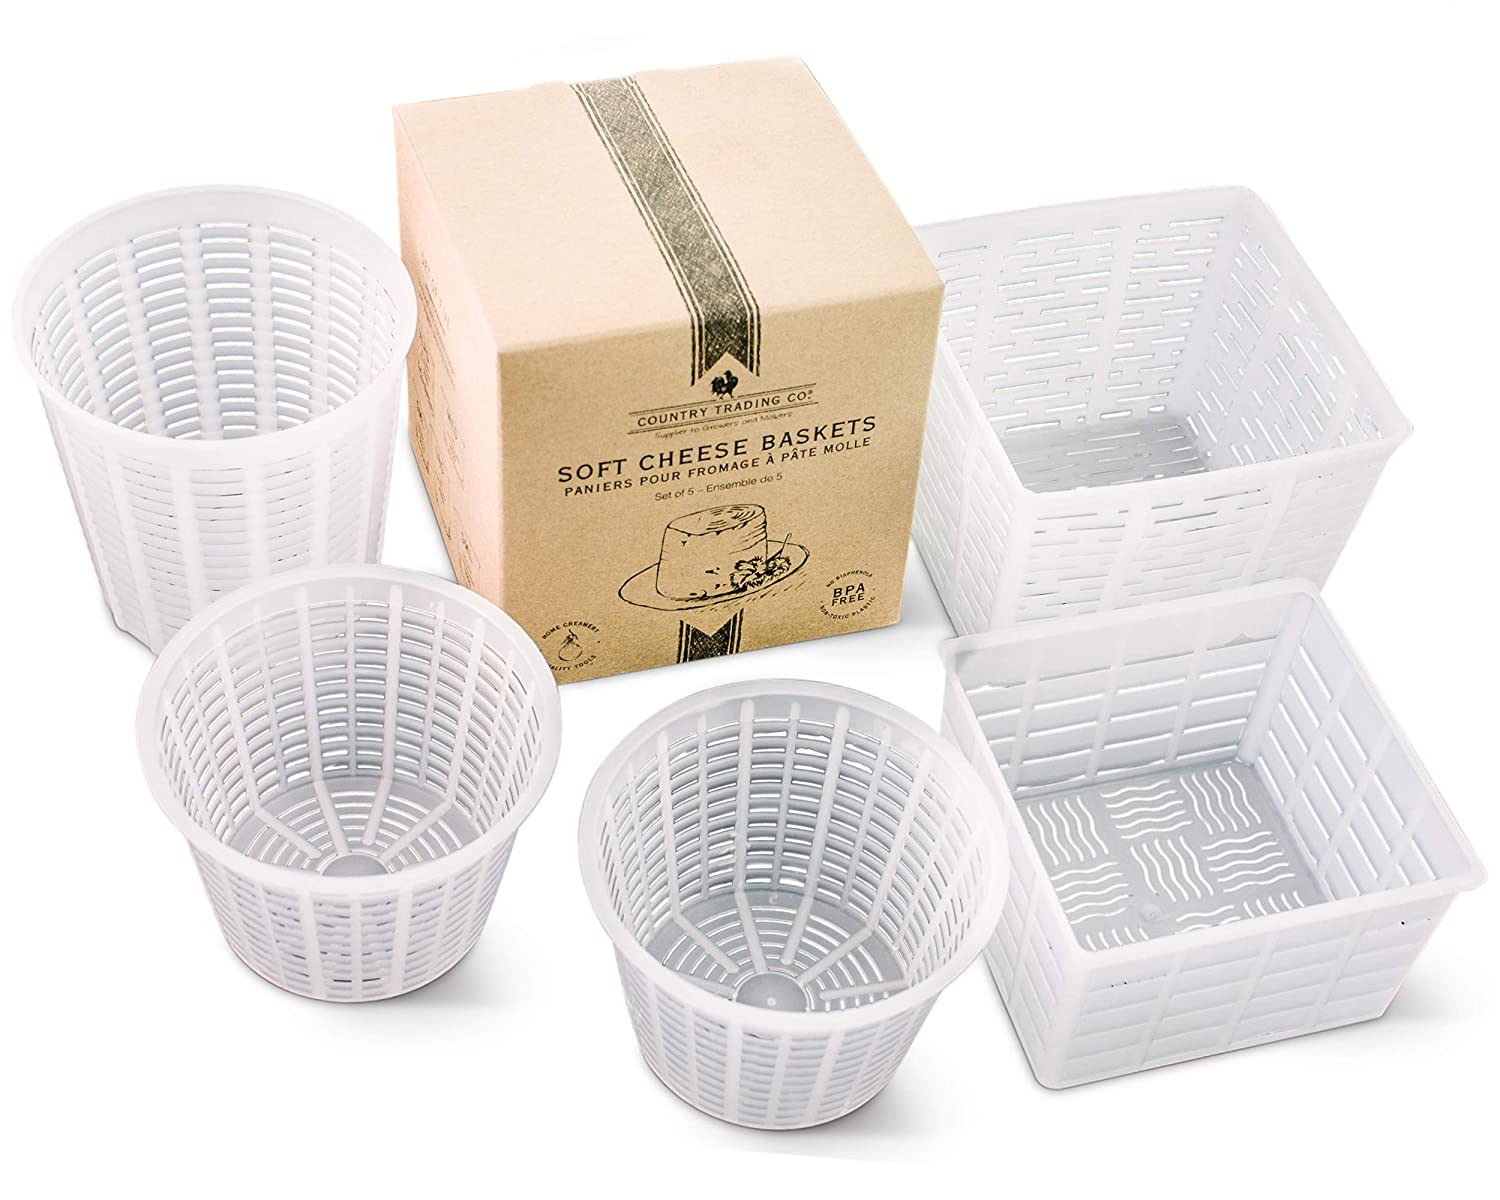 Country Trading Co. Cheese Maker Mould Set of 5 - Baskets for Making Ricotta Quark Cottage and Small Soft Goats Cheeses – Also Great for Paneer Press and Basic Vegan Cheeses – Made in Italy